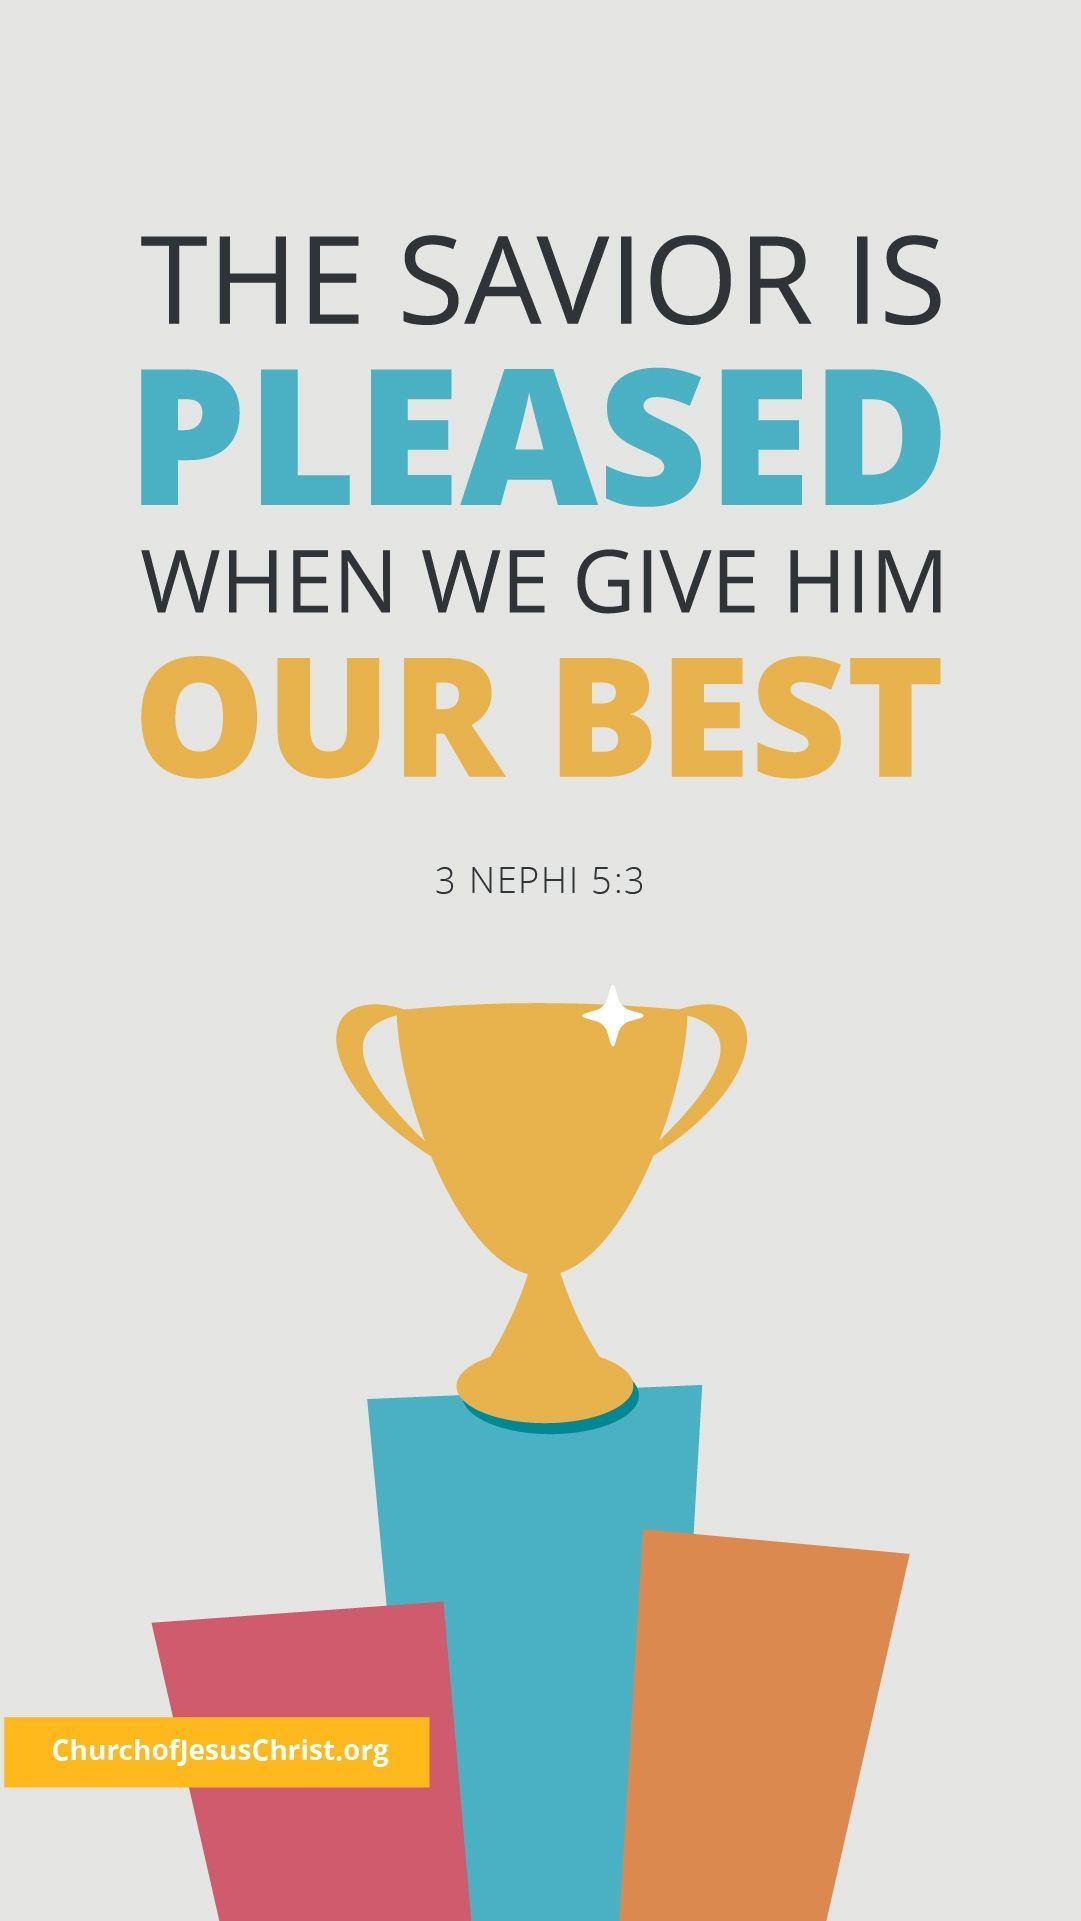 The Savior is pleased when we give Him our best. — See 3Nephi 5:3